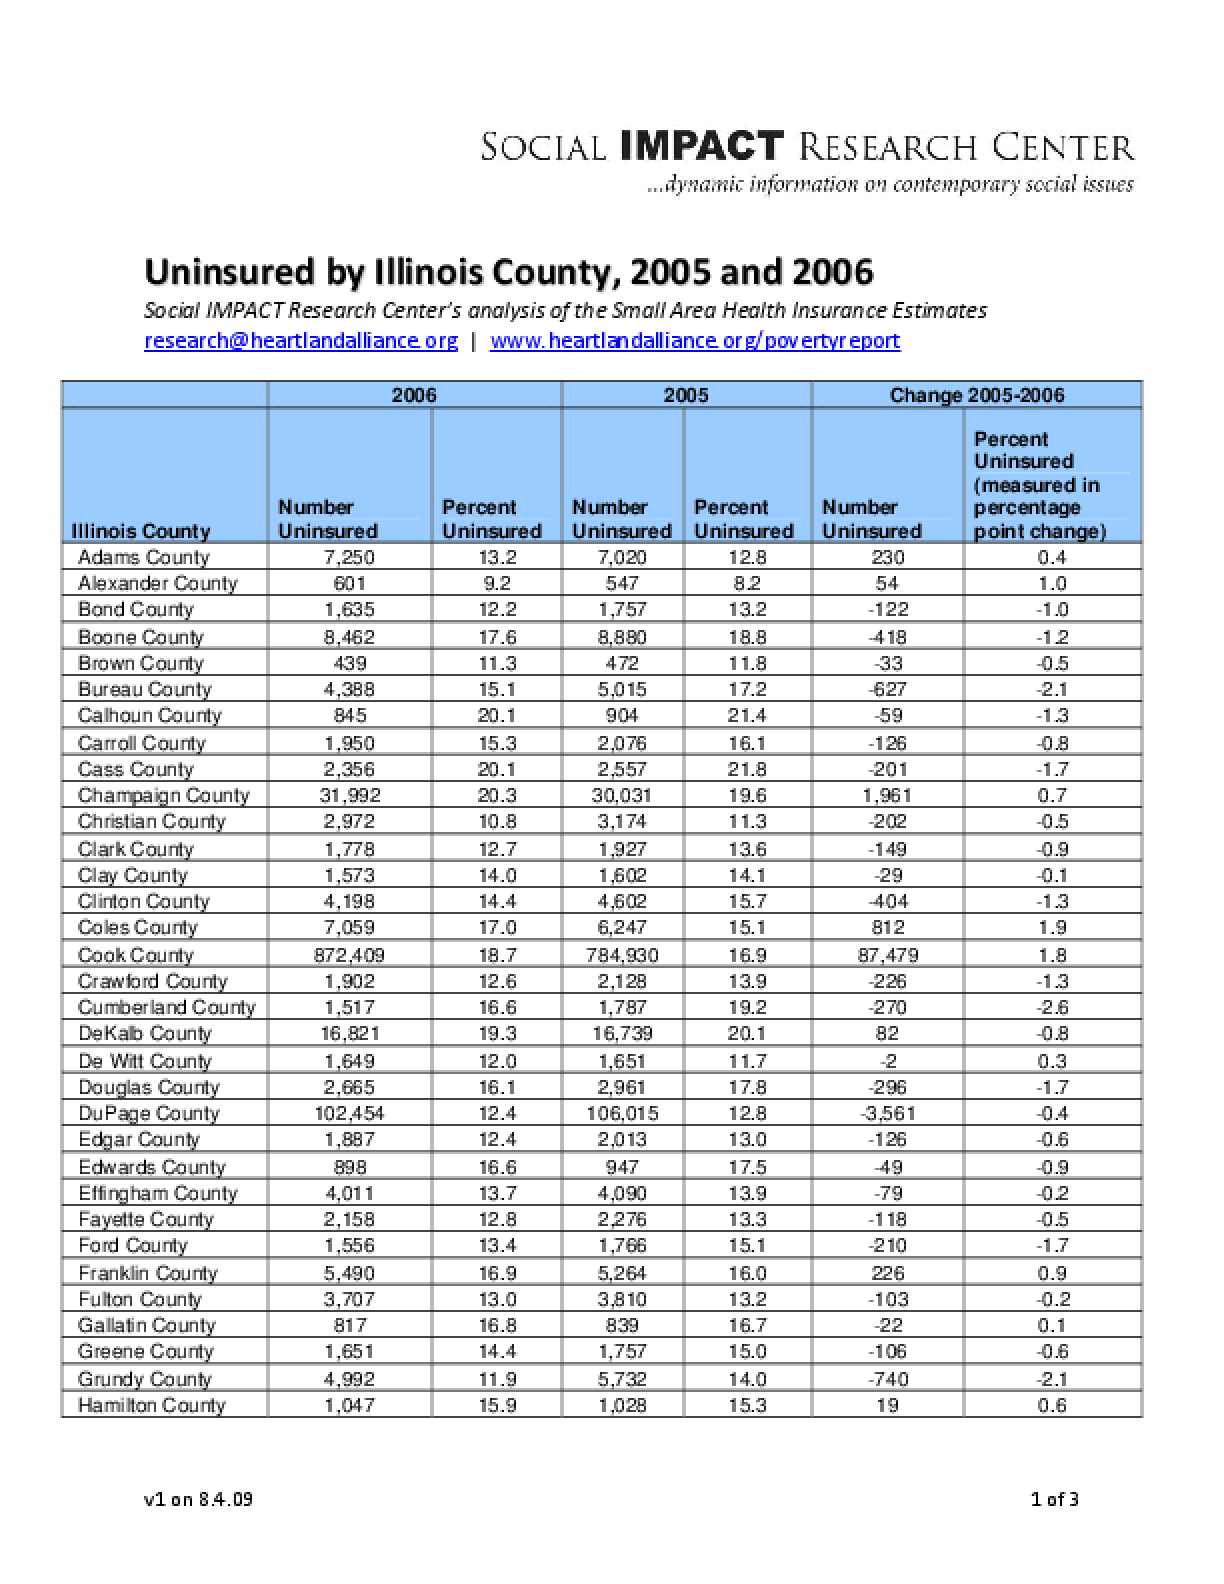 Uninsured by Illinois County, 2005 and 2006